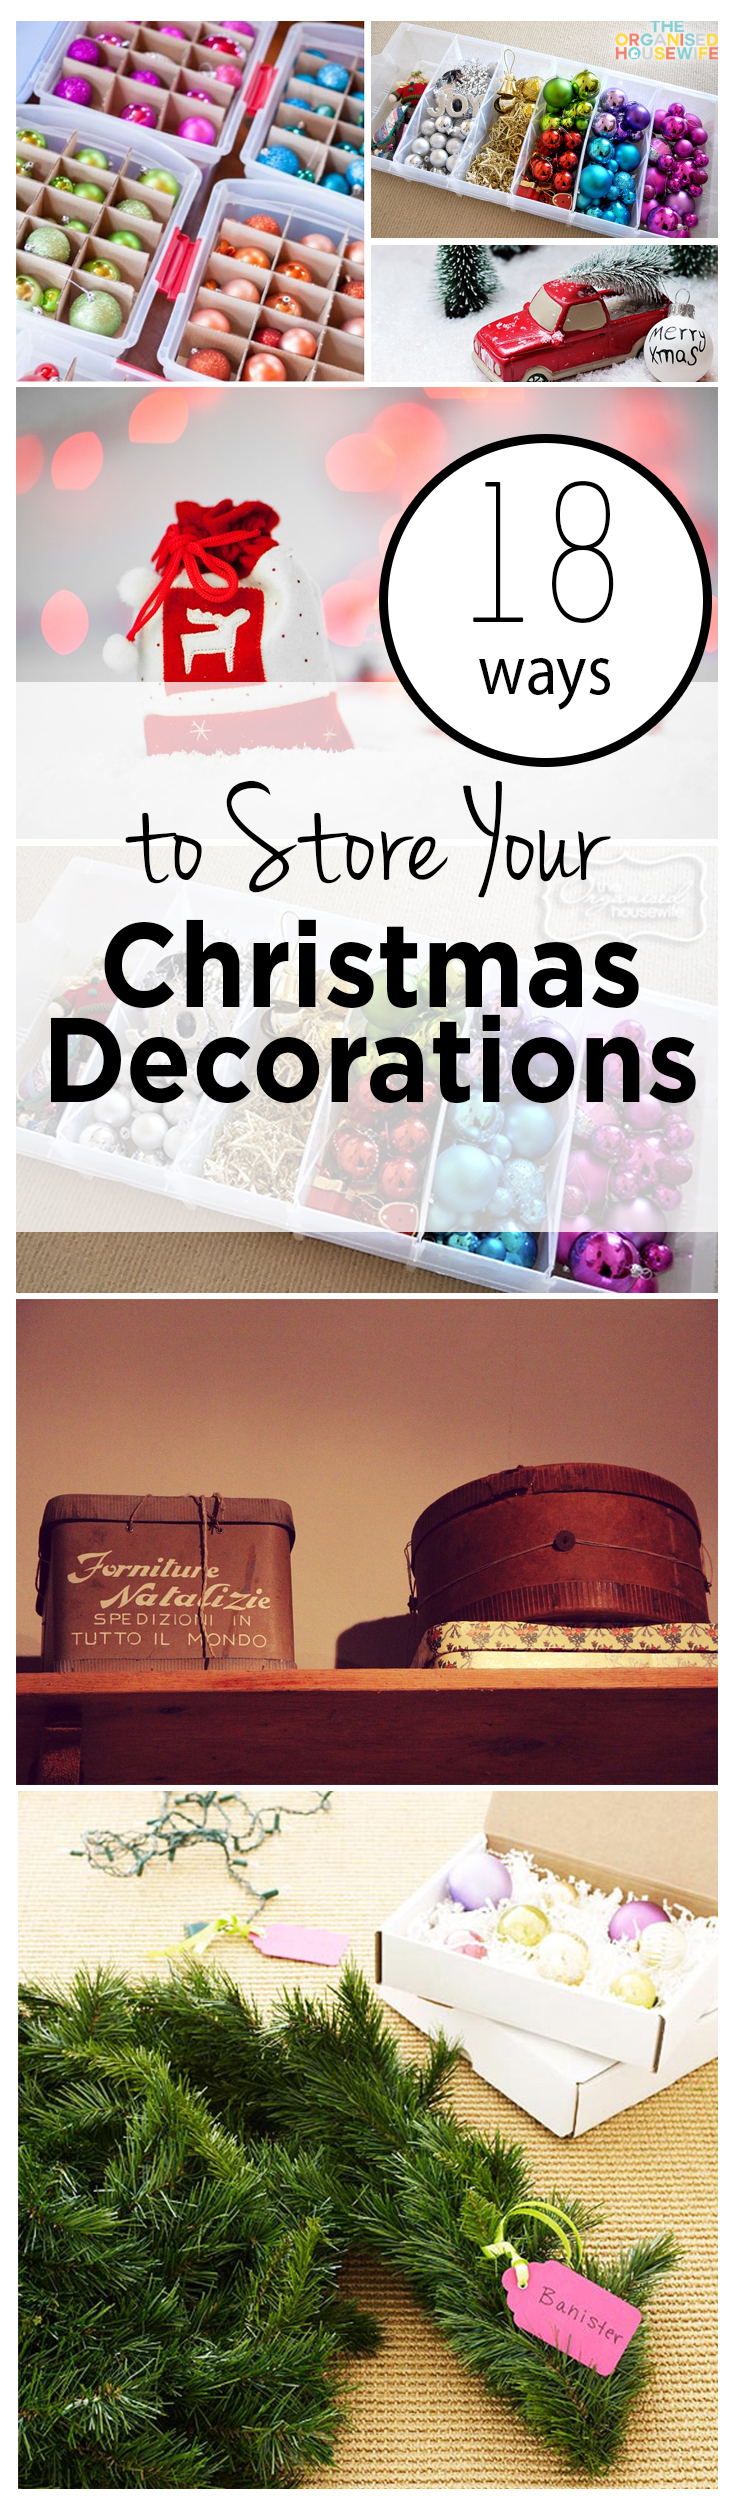 Christmas Storage, How to Store Christmas Decorations, Holiday Decoration Storage, Organization Ideas, Organization Hacks, Holiday Storage TIps and Tricks, Frugal Storage for Christmas Decor